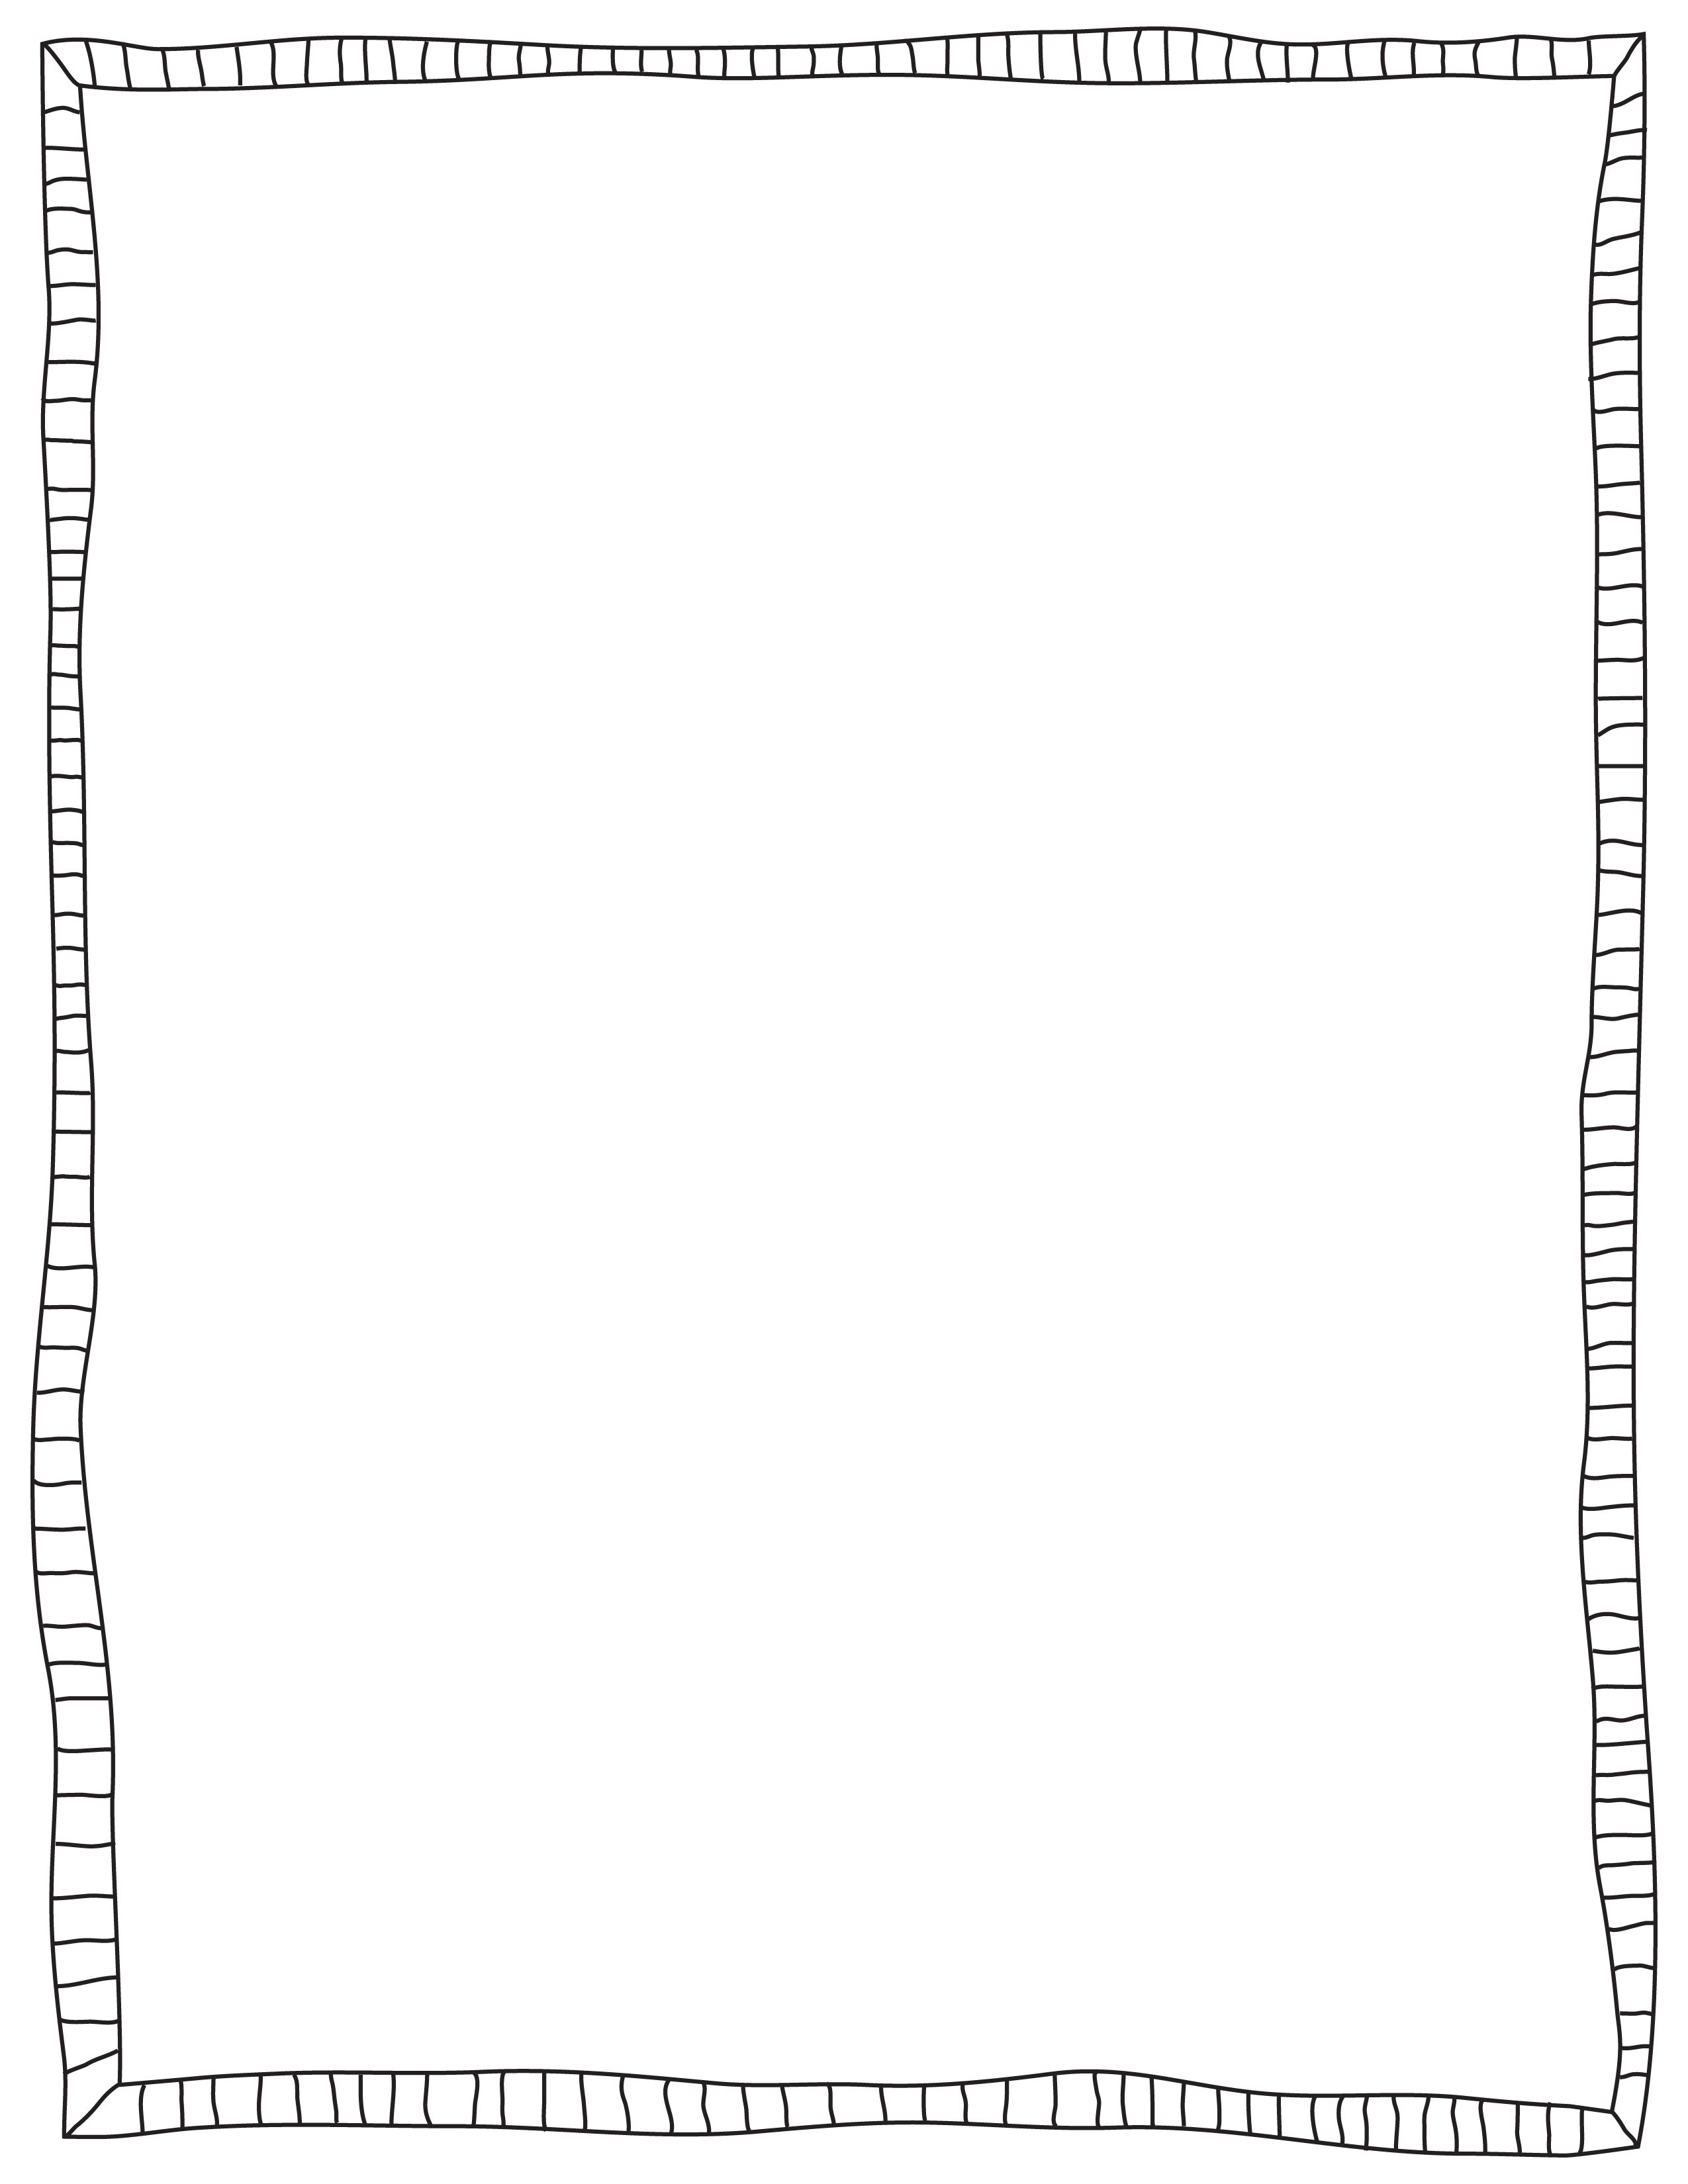 Little loops double page border free page borders - A Sample From Our New Doodled Black Borders Collections This Border Frames Pack Includes 5 Different Designs And Is Available In O